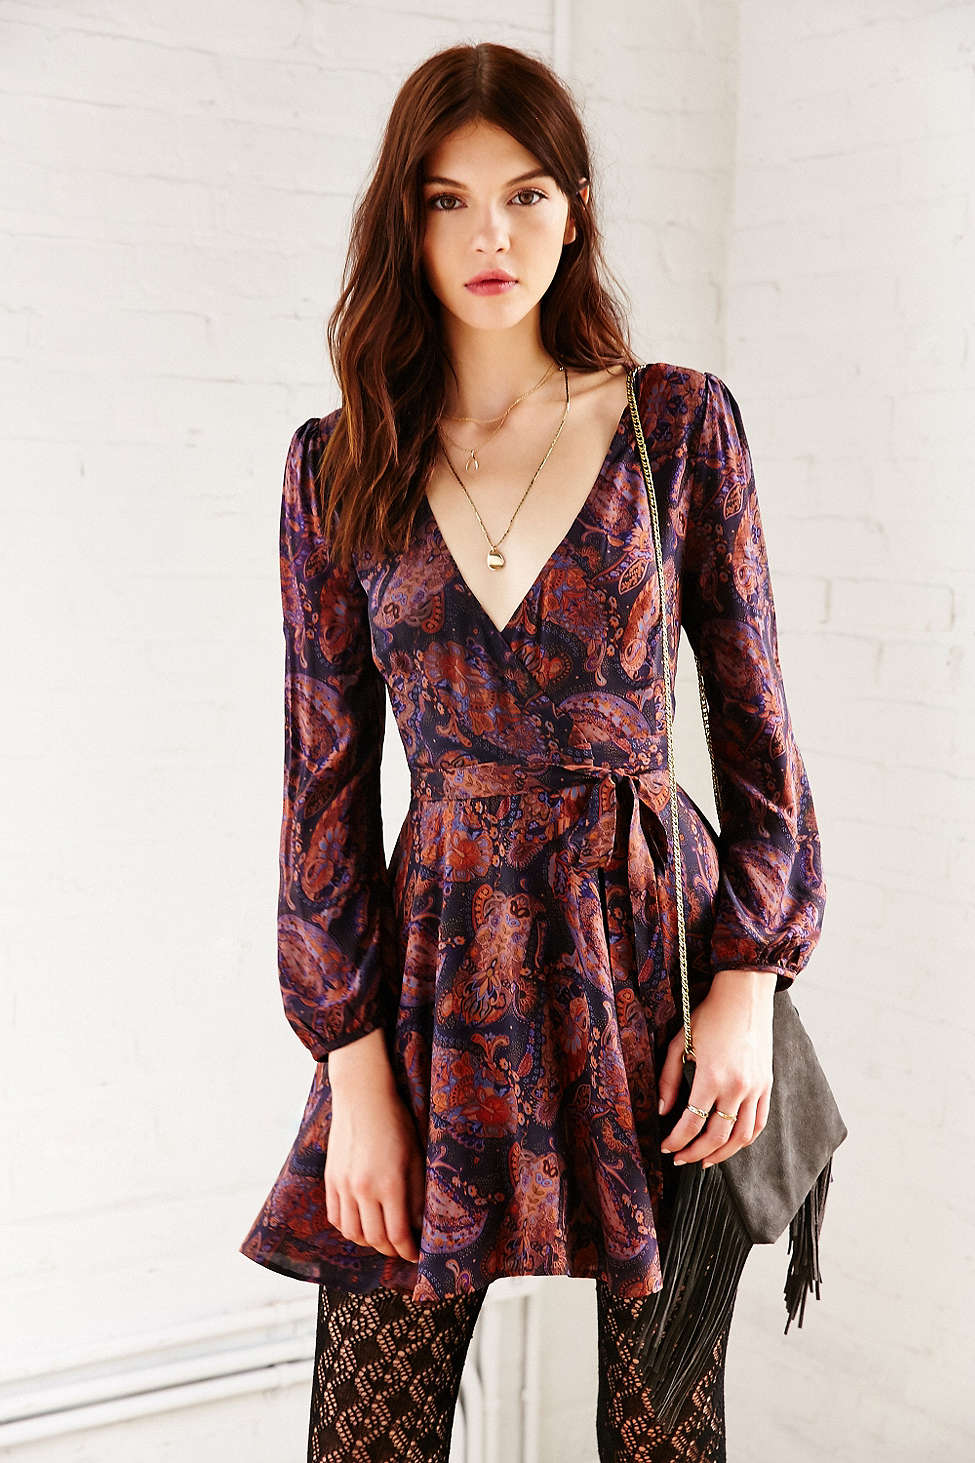 Pretty Wrap Dresses for Spring Flings - Urban Outfitters Ecote Ruby Mini Wrap Dress